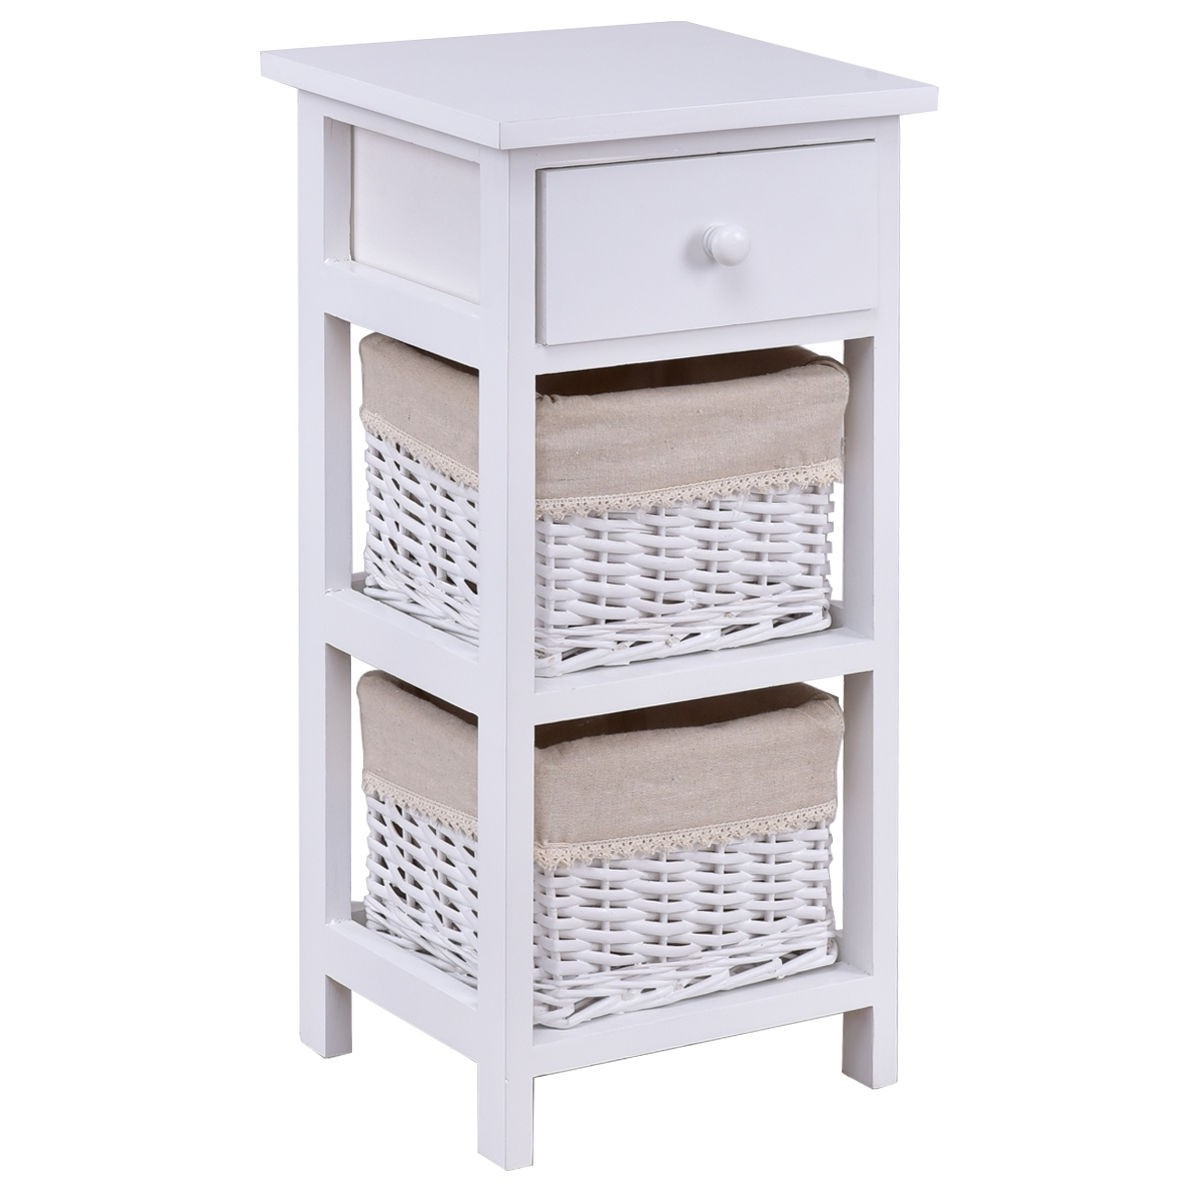 White Wood 1 Drawer End Table Nightstand With 2 Wicker Baskets